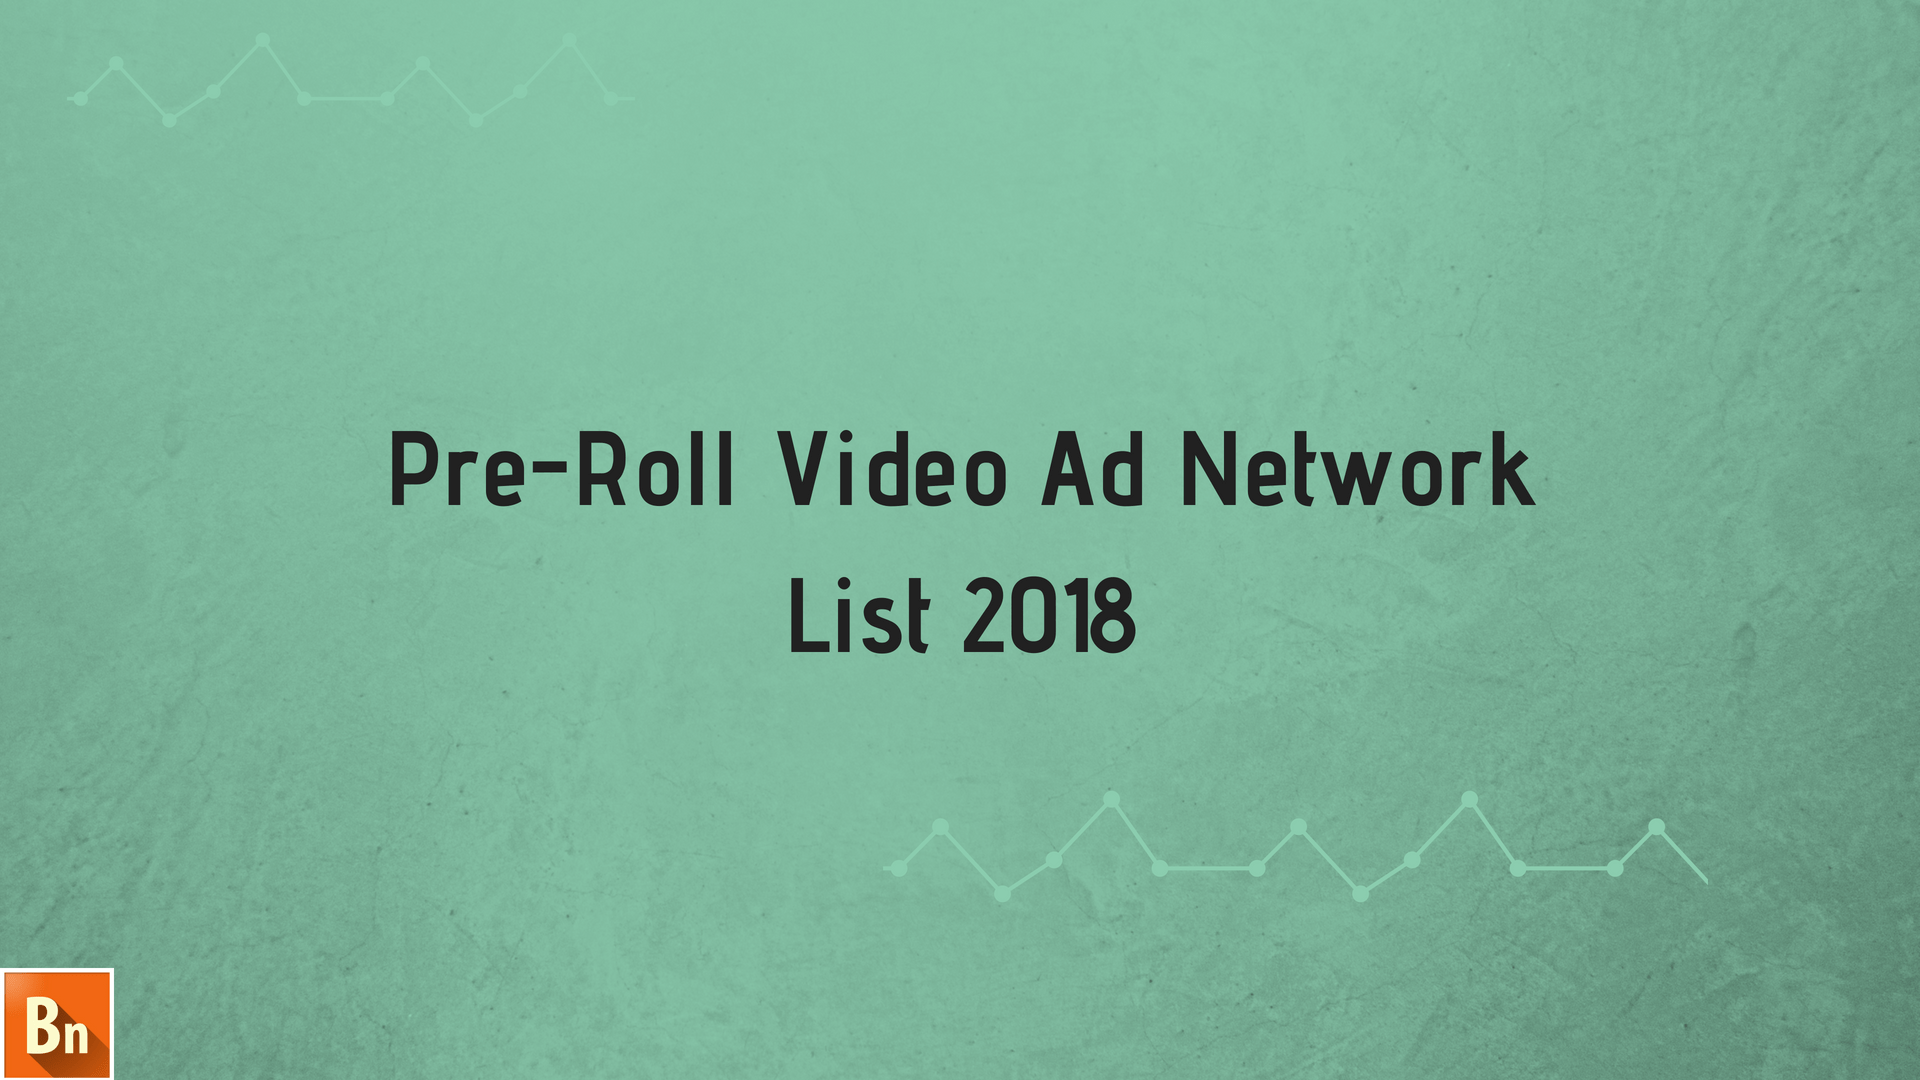 Pre-Roll Video Ad Network List 2018